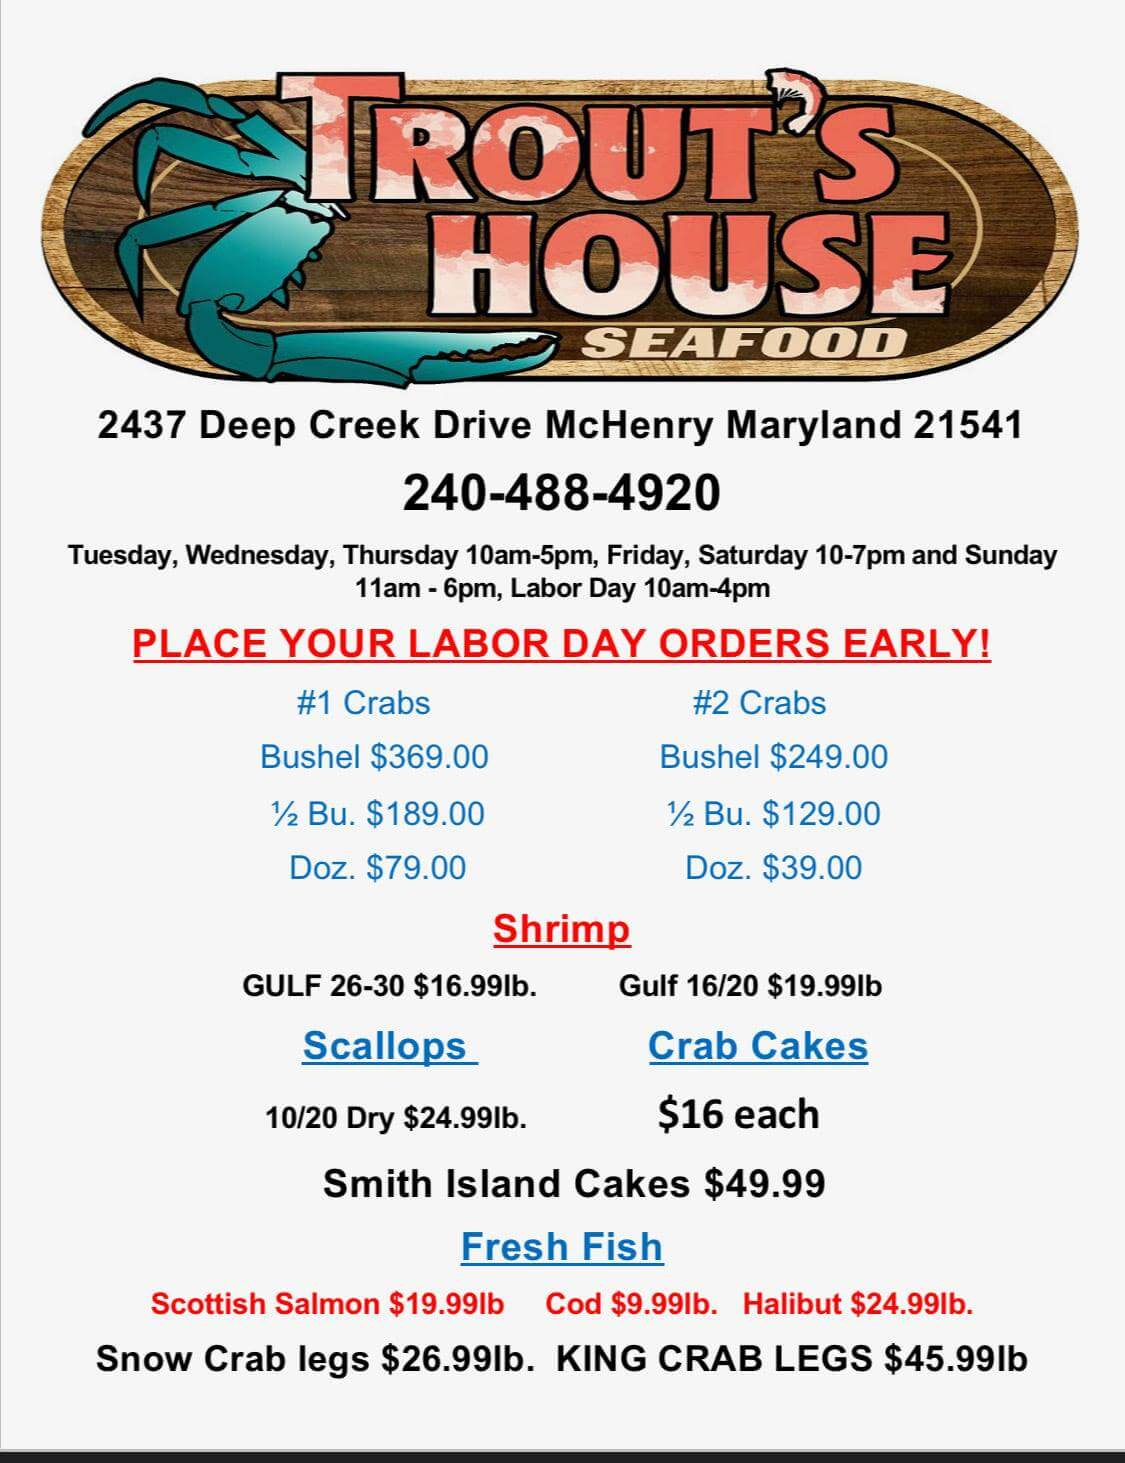 Trout's House Seafood: Labor Day Market Prices